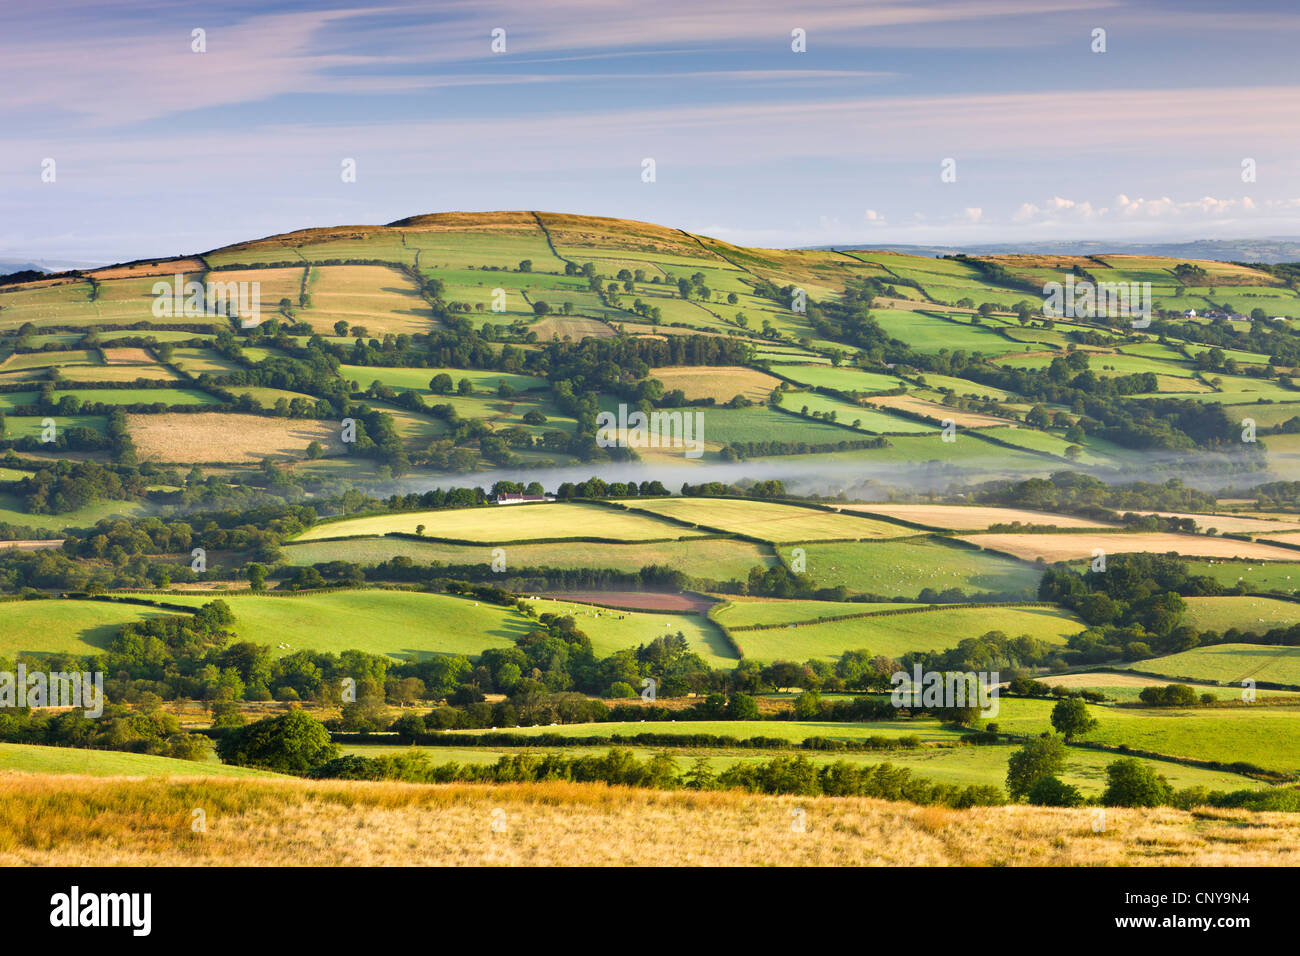 Patchwork-Felder und hügeligen Landschaft, Brecon Beacons National Park, Carmarthenshire, Wales, UK. (August) Stockbild